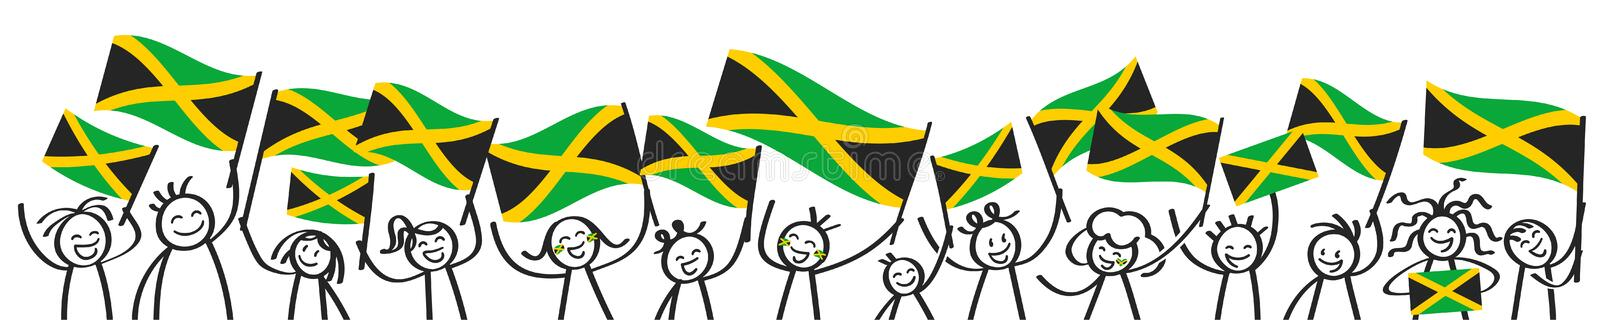 Cheering crowd of happy stick figures with Jamaican national flags, smiling Jamaica supporters, sports fans royalty free illustration